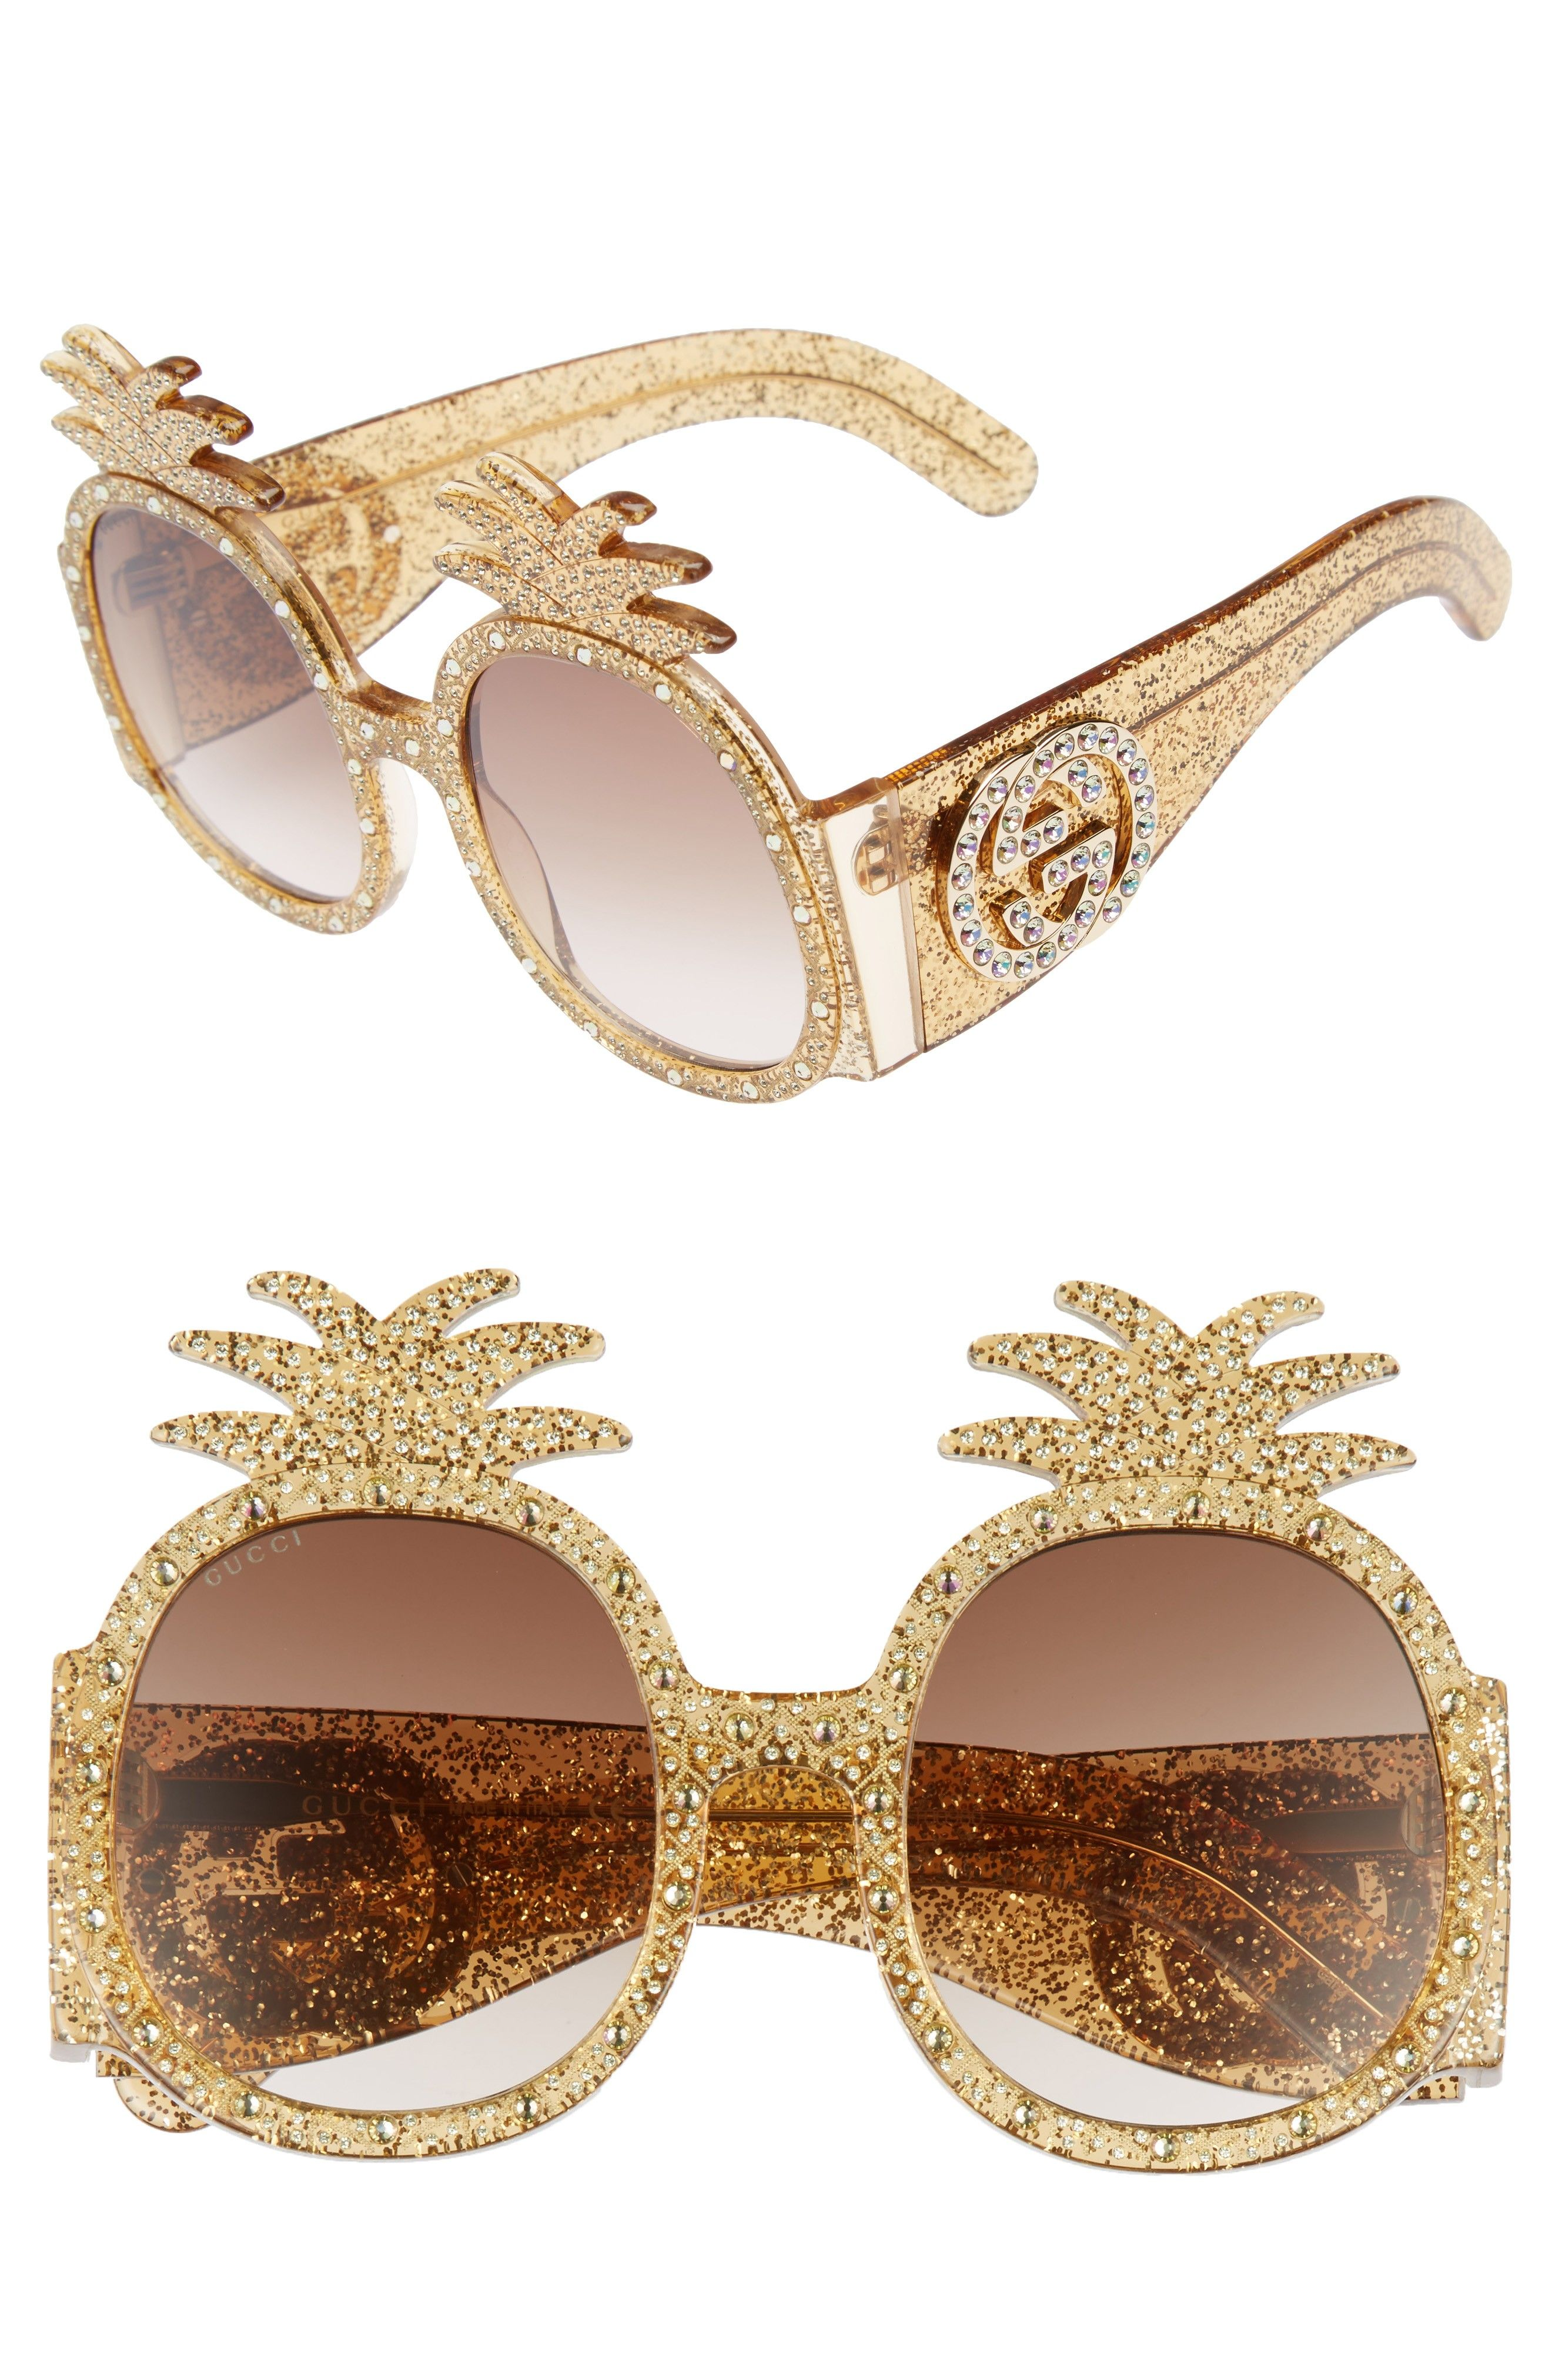 Gold Gucci Pineapple Sunglasses | Clothes | Pinterest